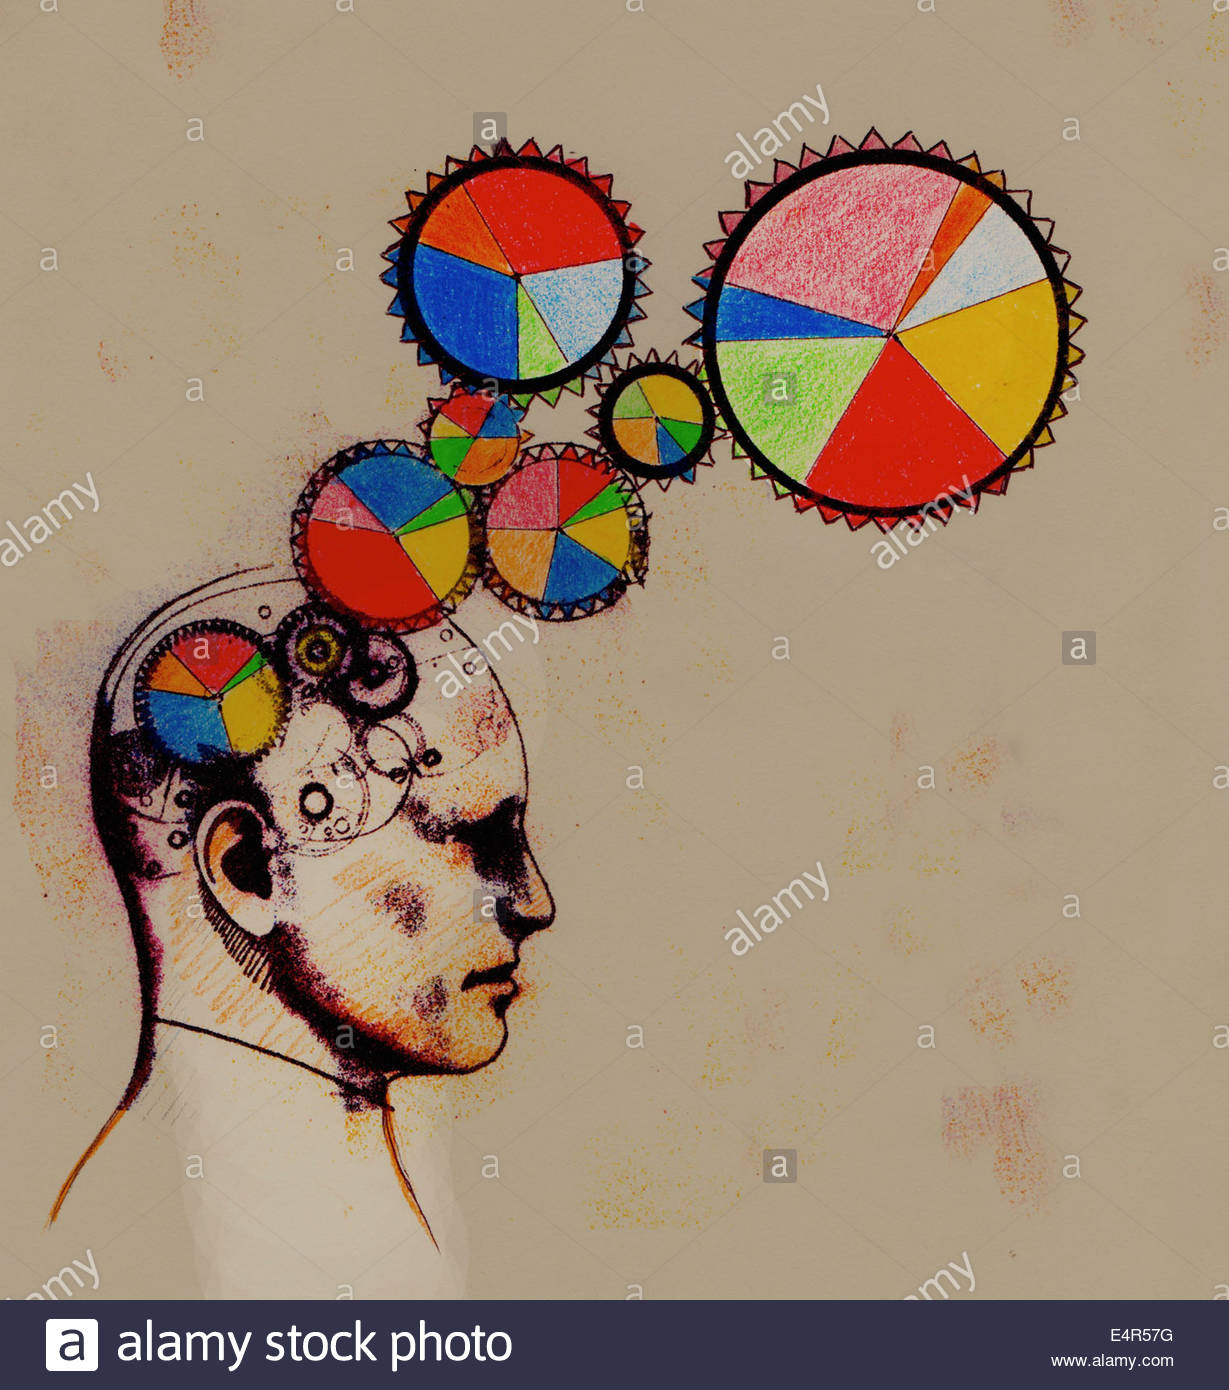 Multicolored pie chart cogs connected to man's brain - Stock Image